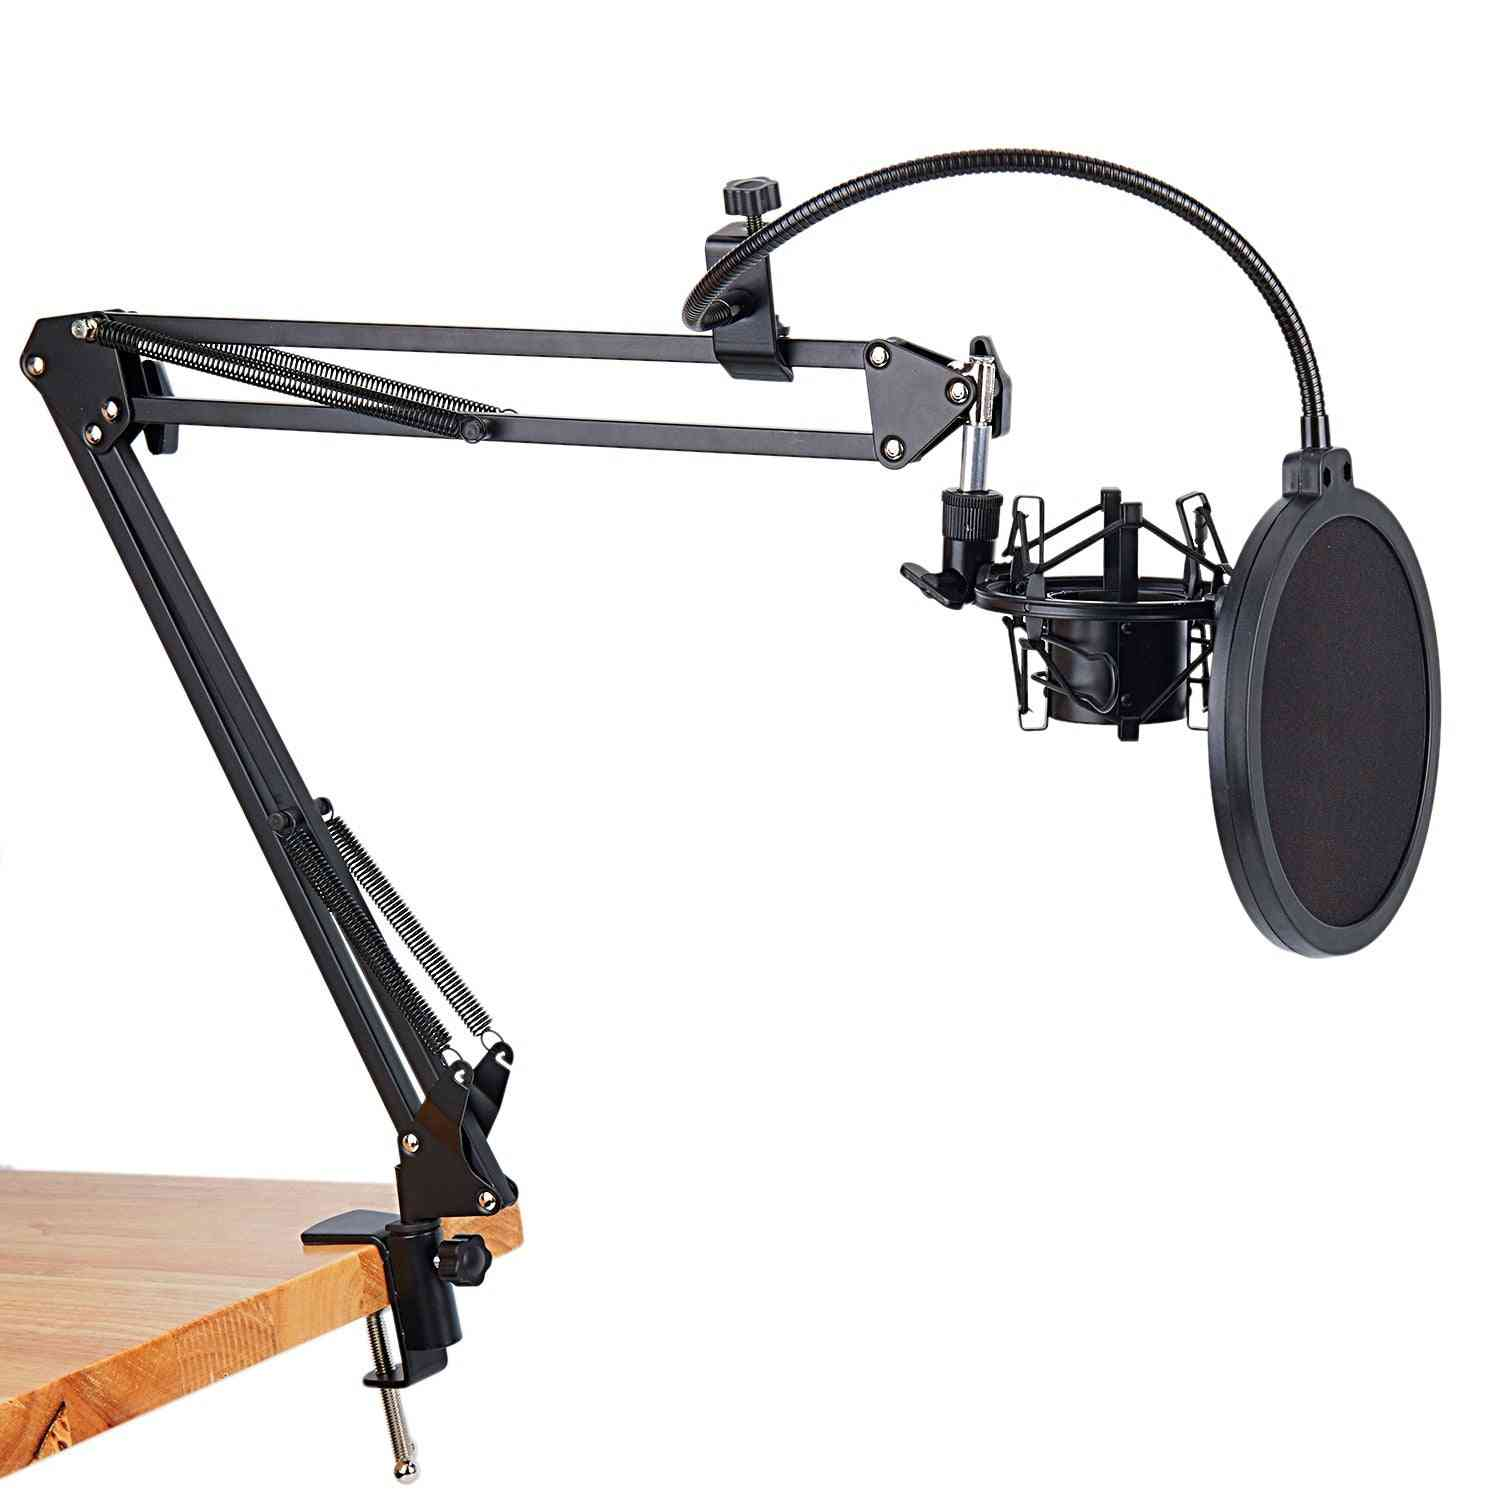 Universal Shock Mount Mic Holder Table Mounting Clamp